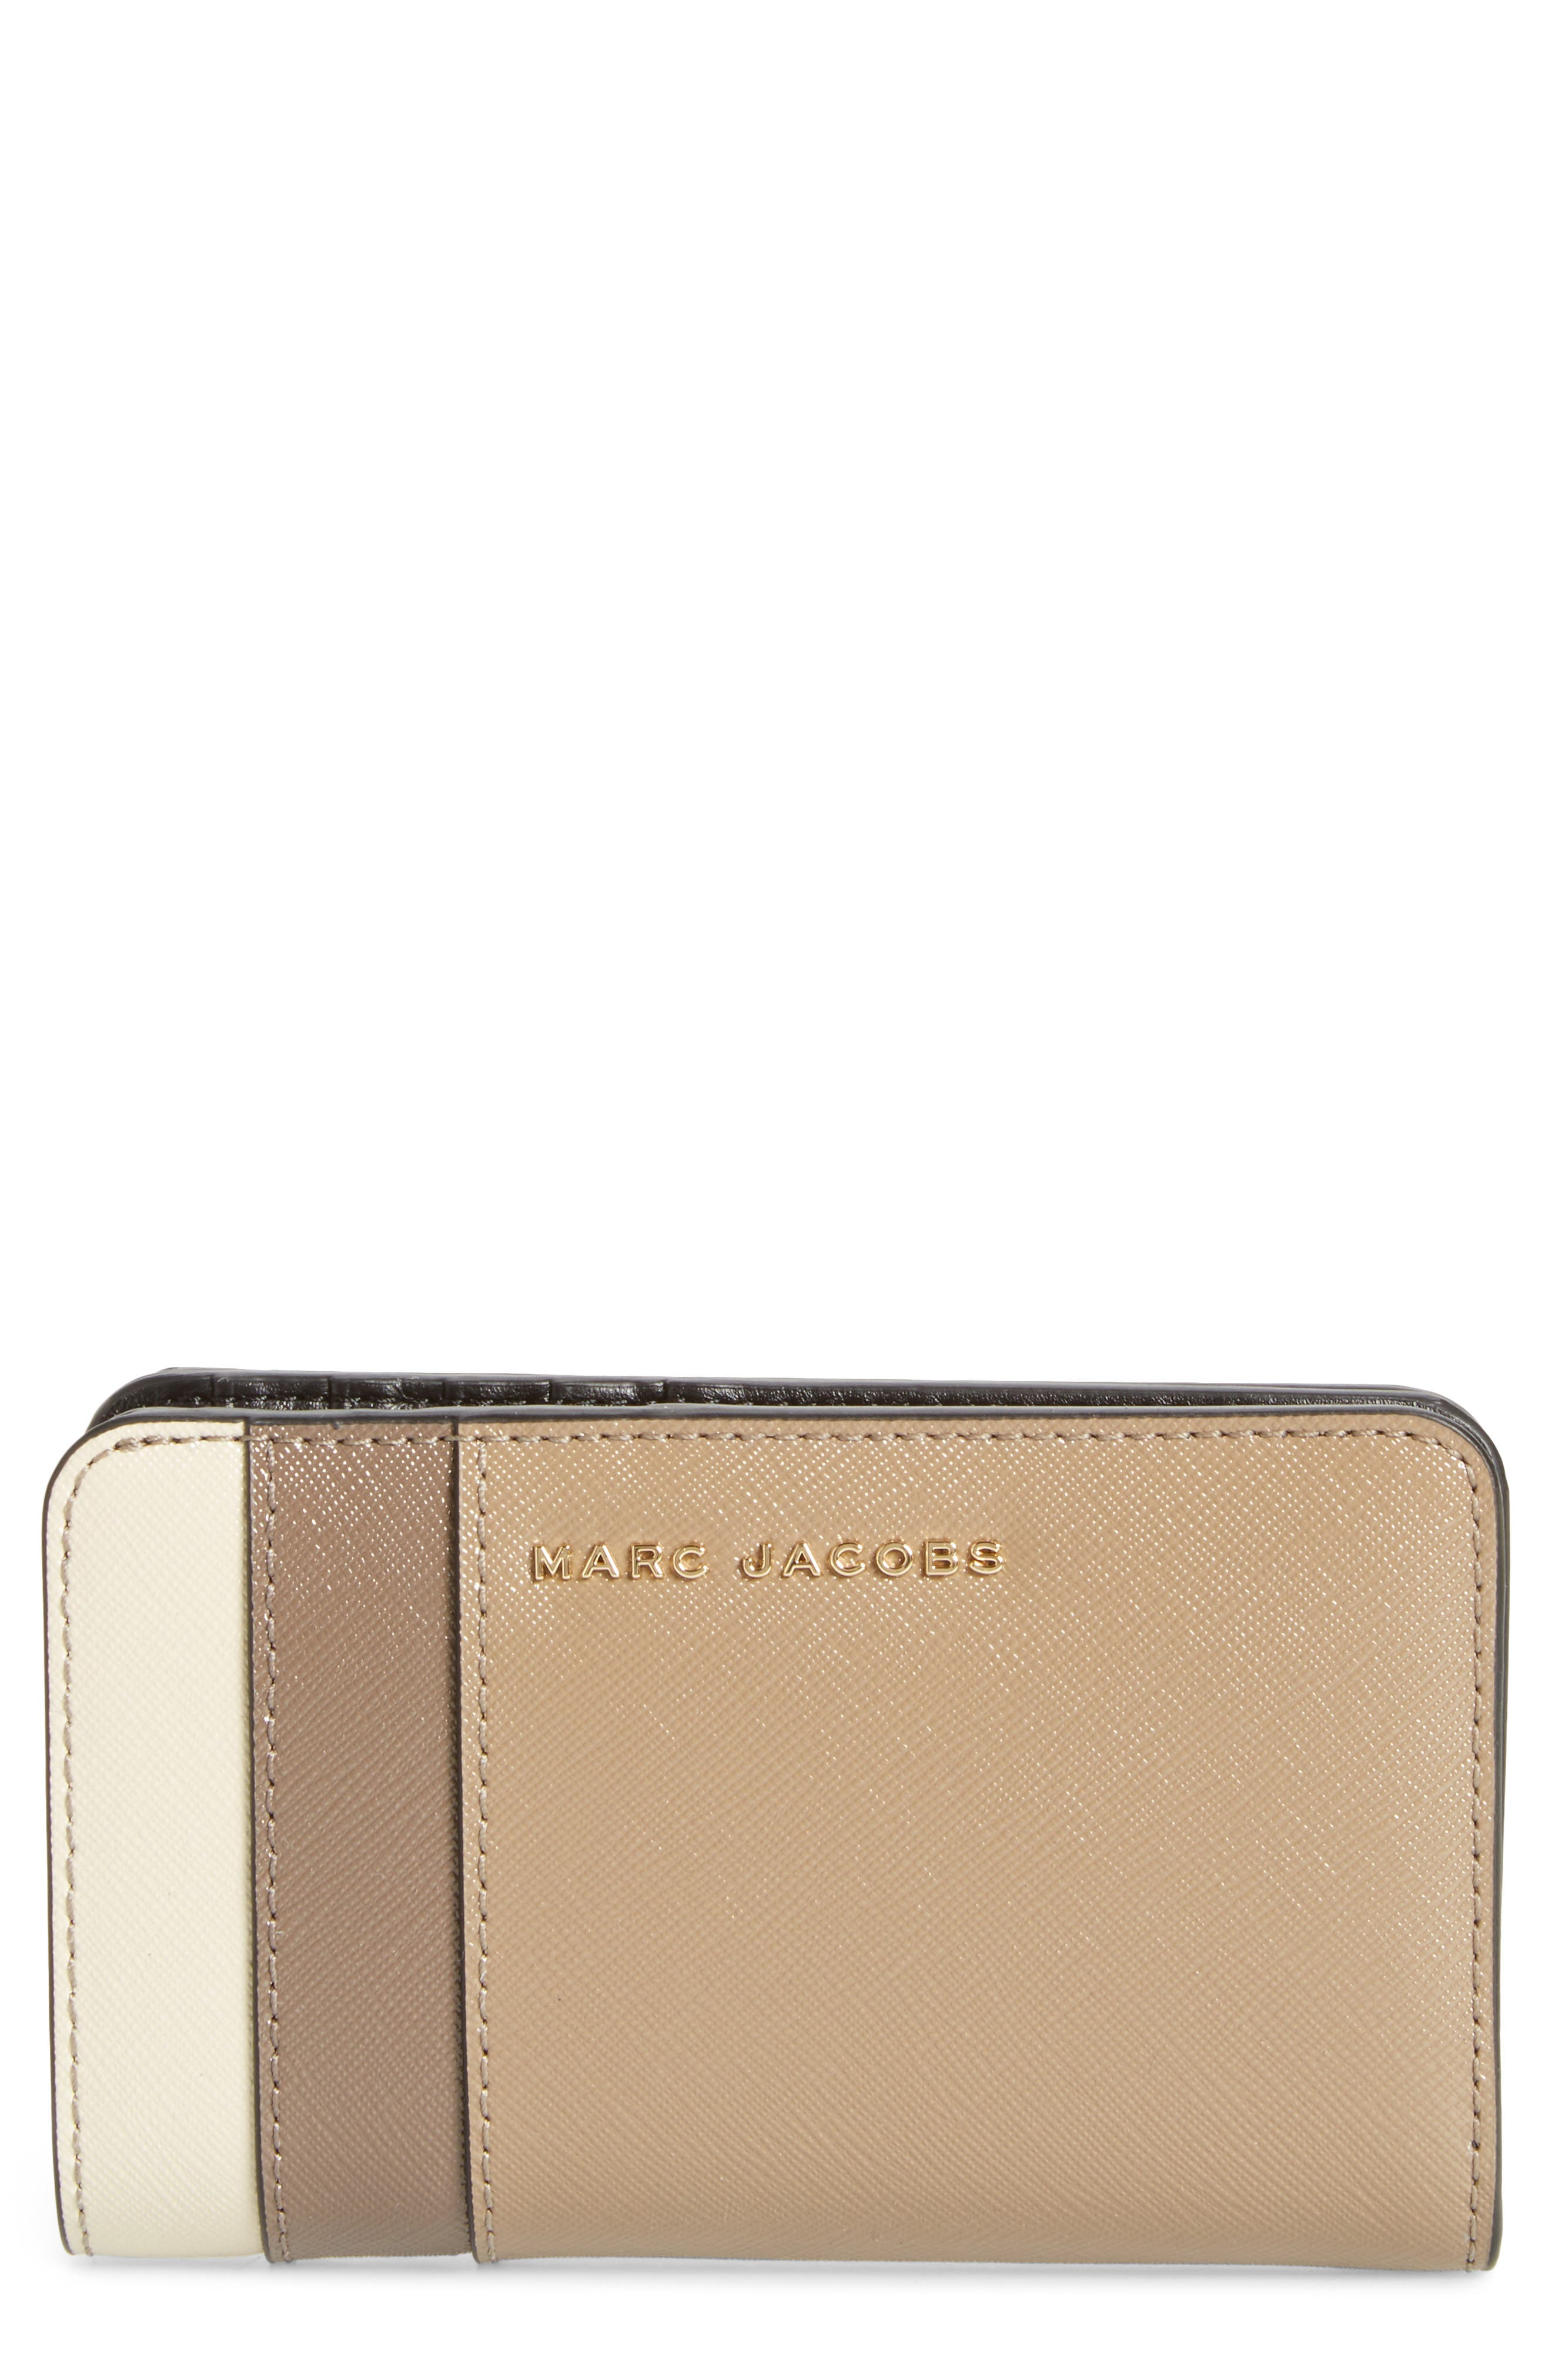 Main Image - MARC JACOBS Saffiano Leather Compact Wallet